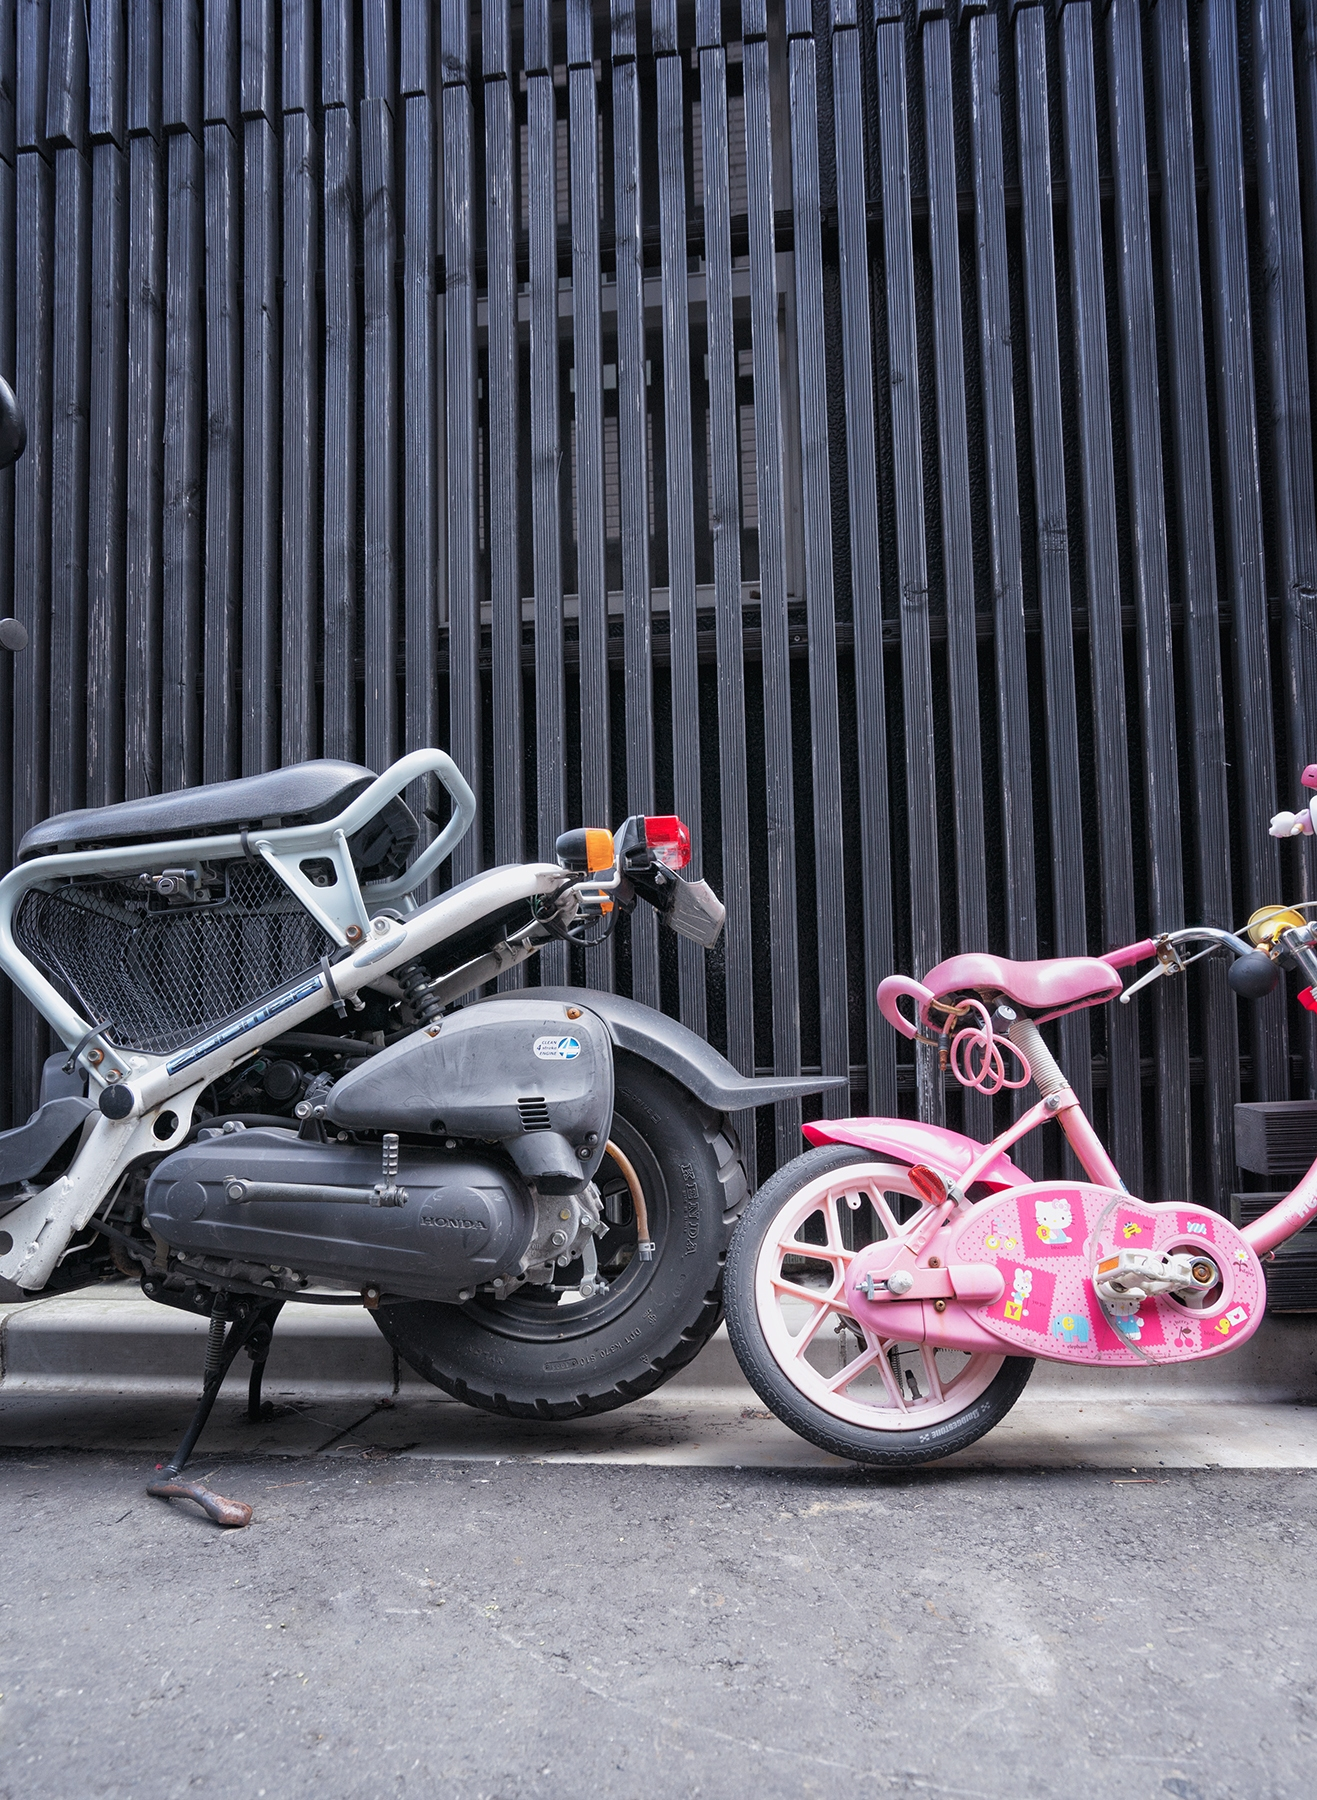 motorcycle, bike, hello kitty, bicycle, japan, asia, black, street, pink, garage,